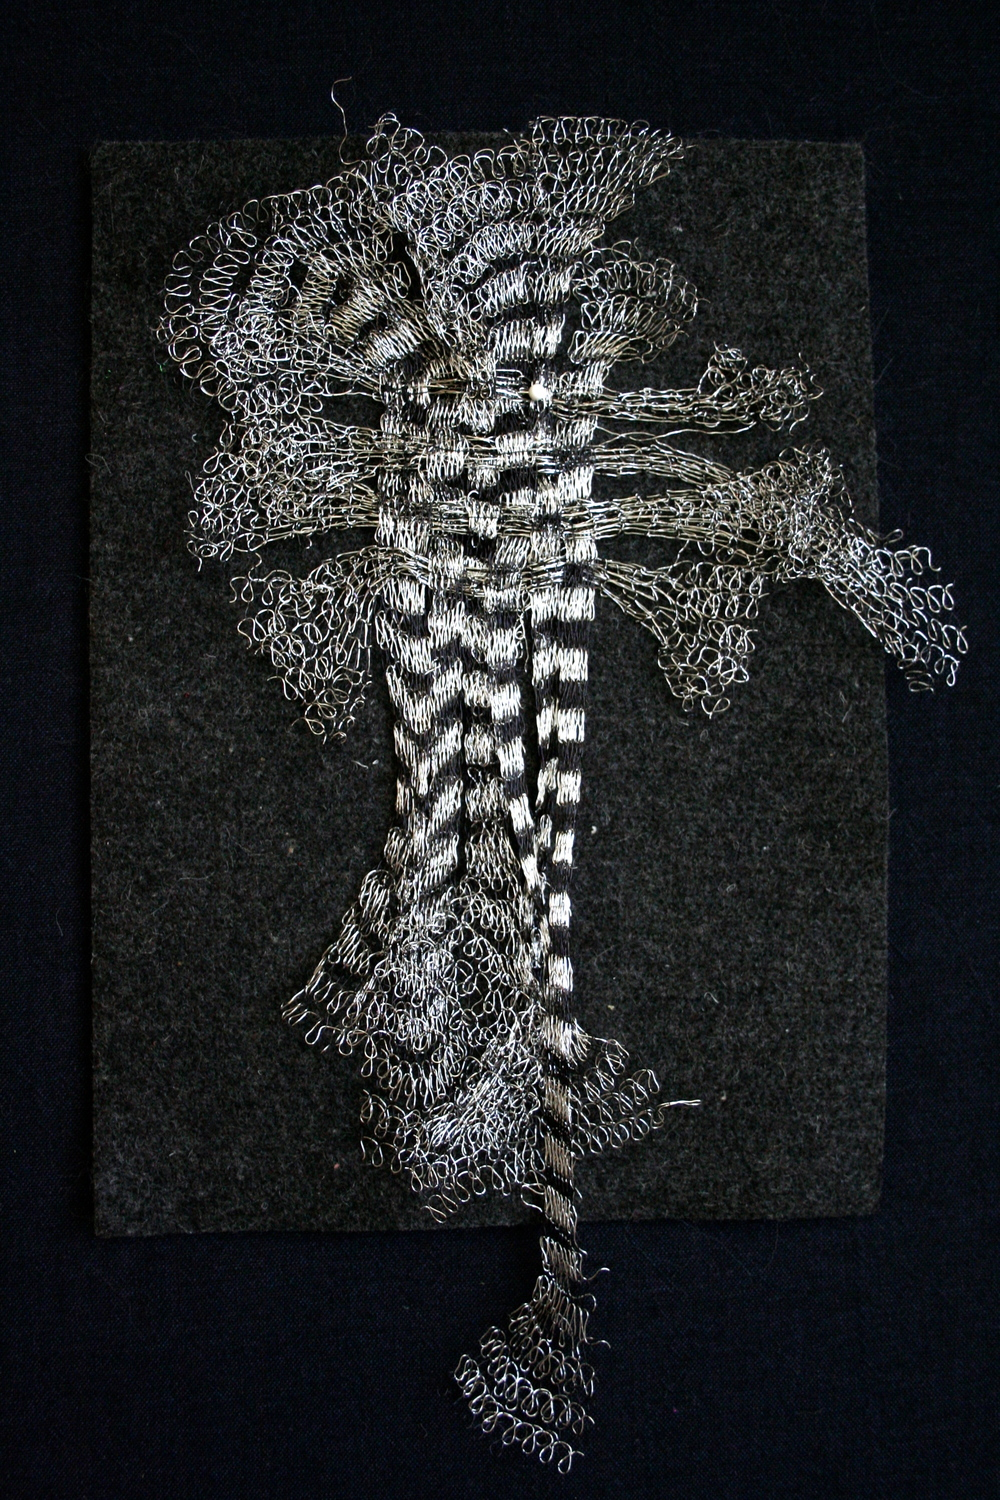 Stretched and woven wire knit